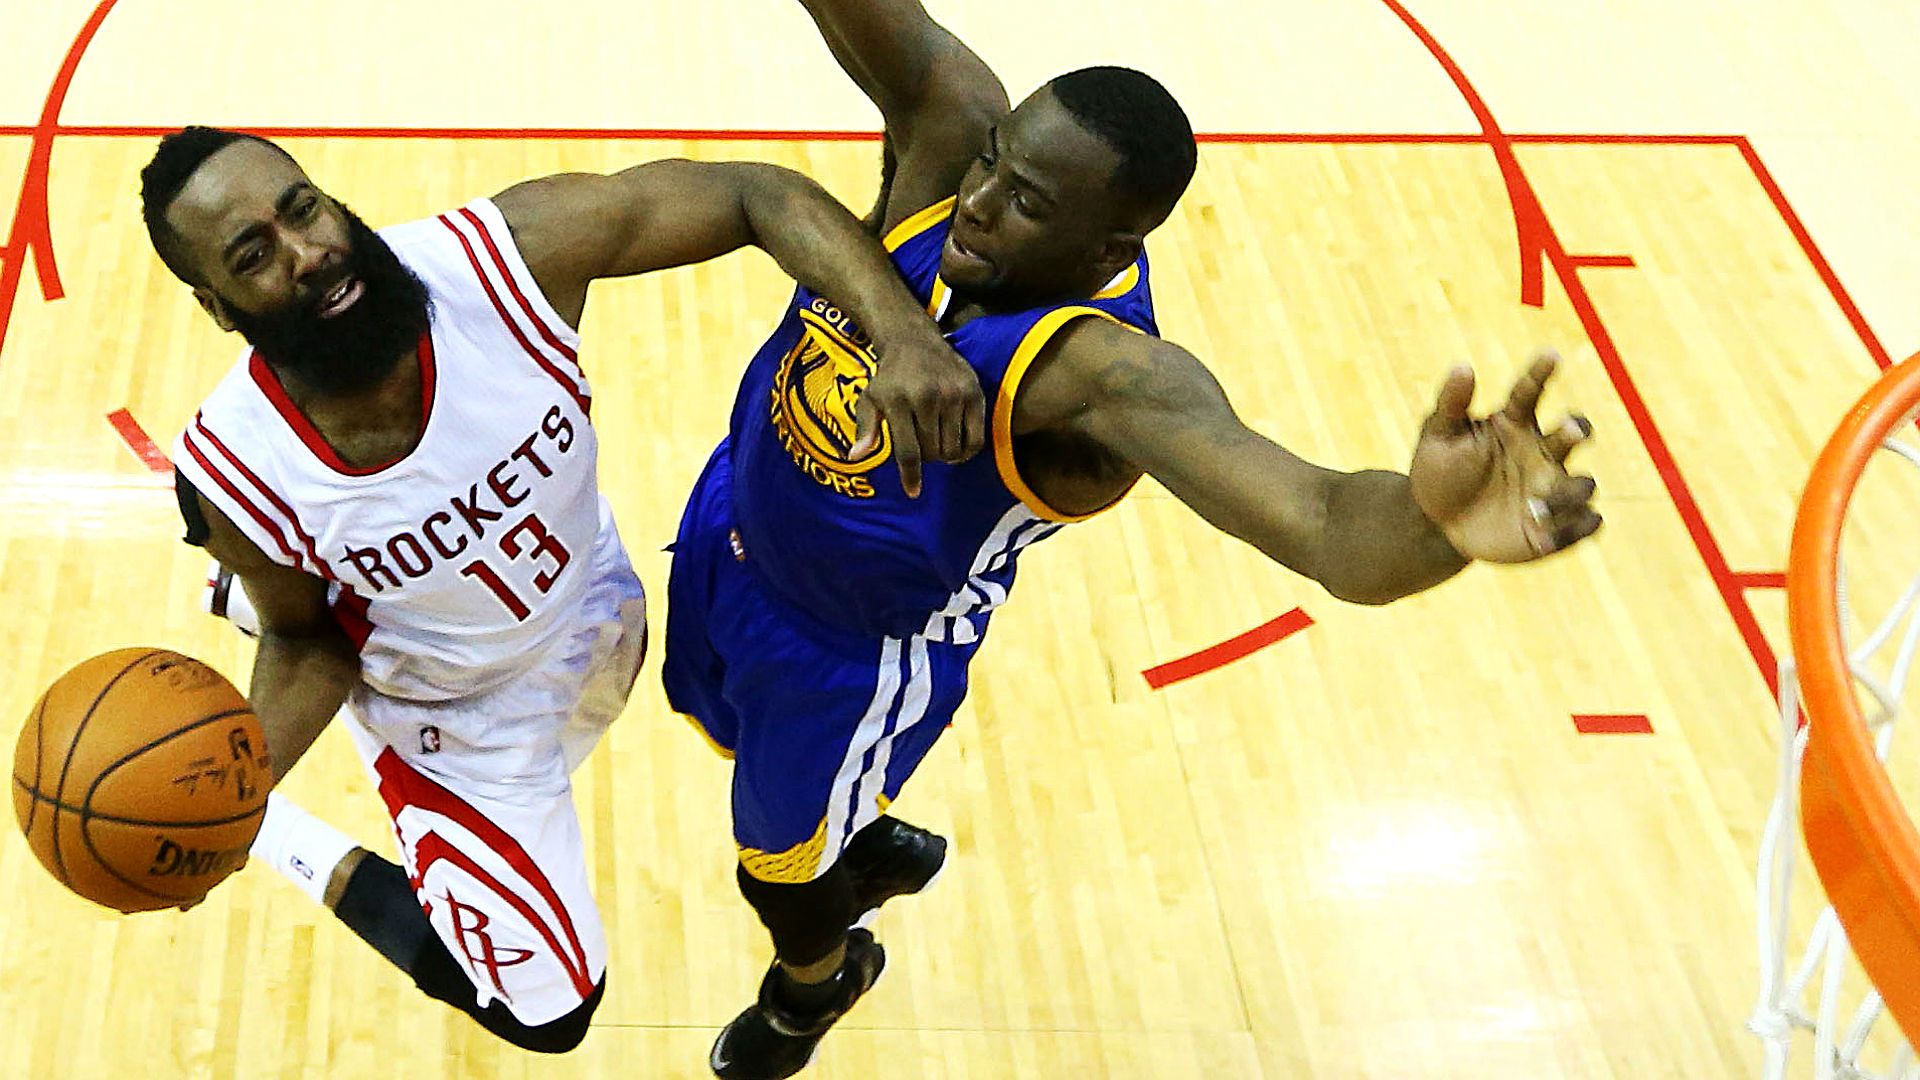 Rockets vs. Warriors Game 5 line and pick – Houston a double-digit dog again in Golden State